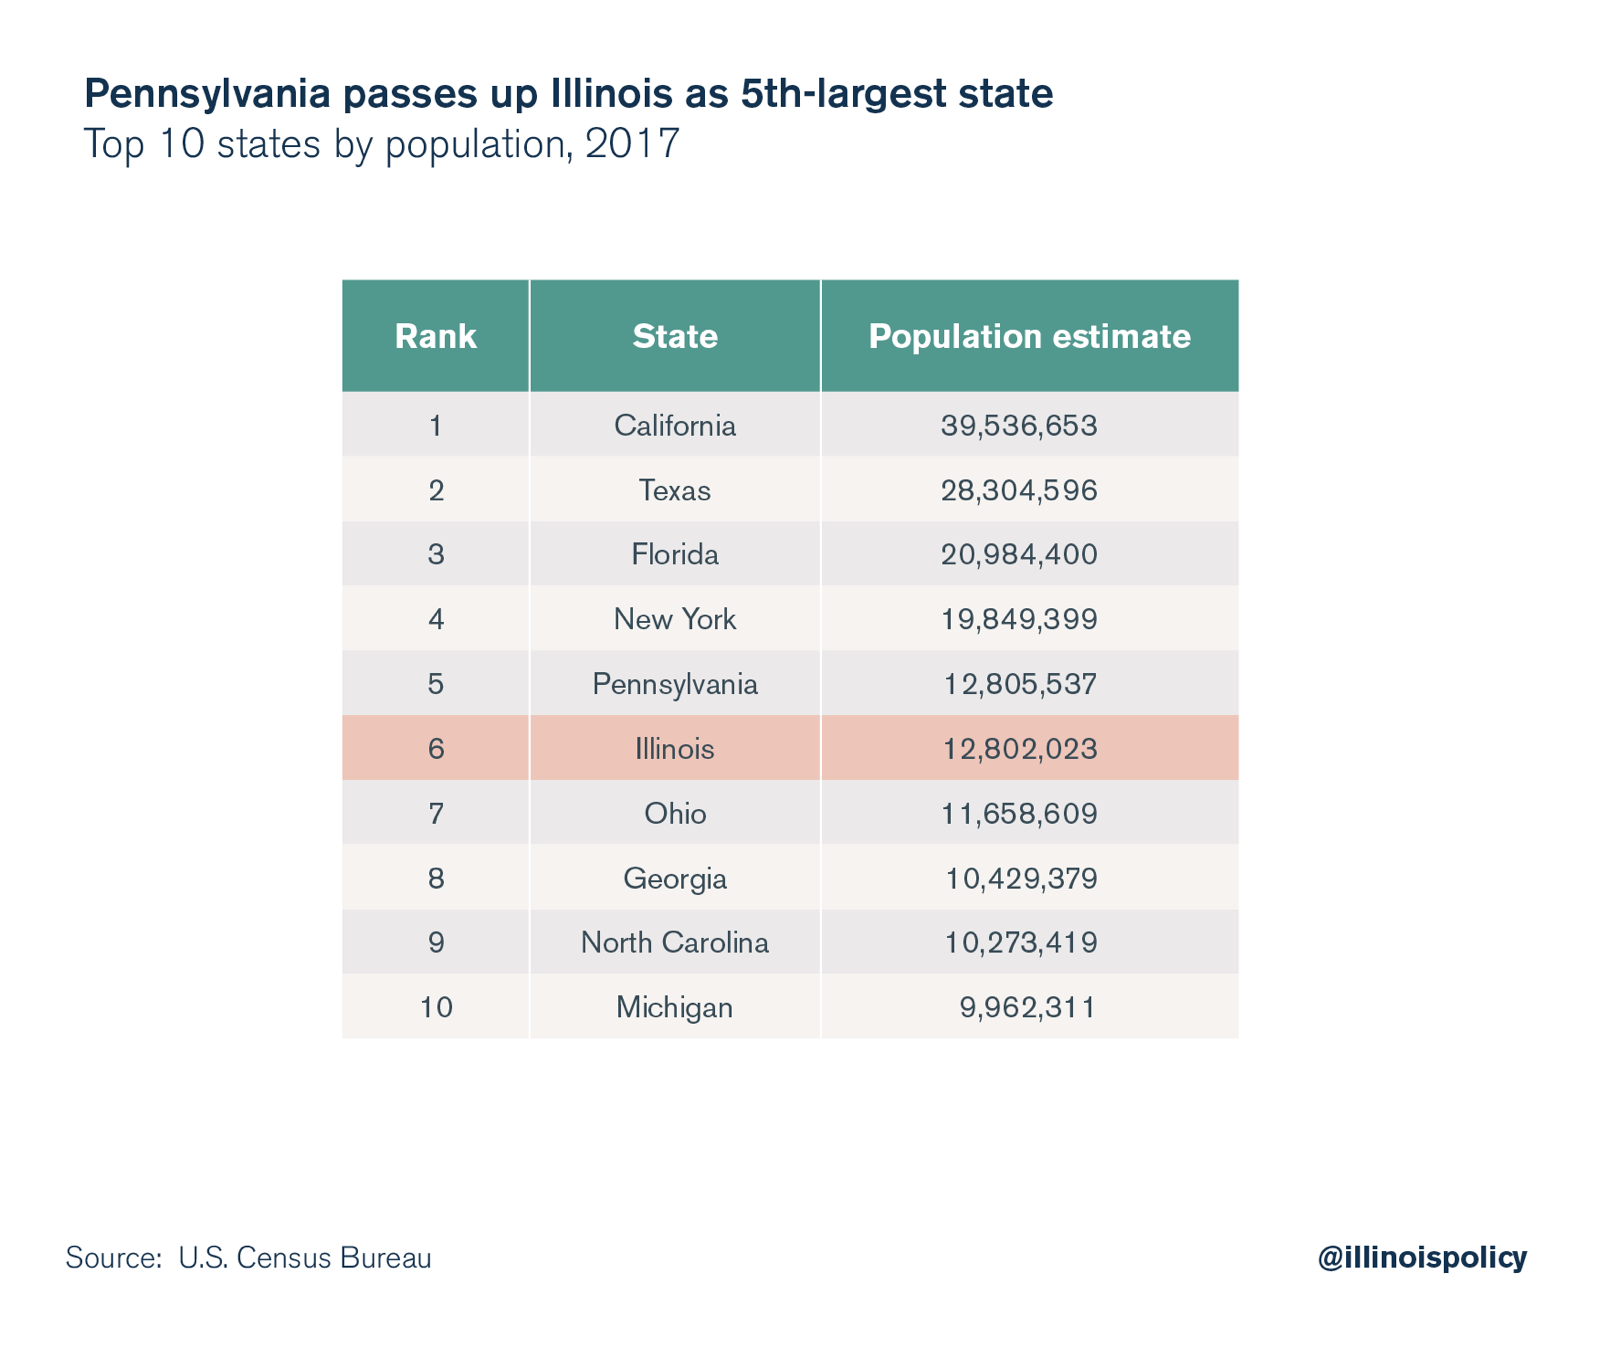 census: illinois no longer the 5ht-largest state